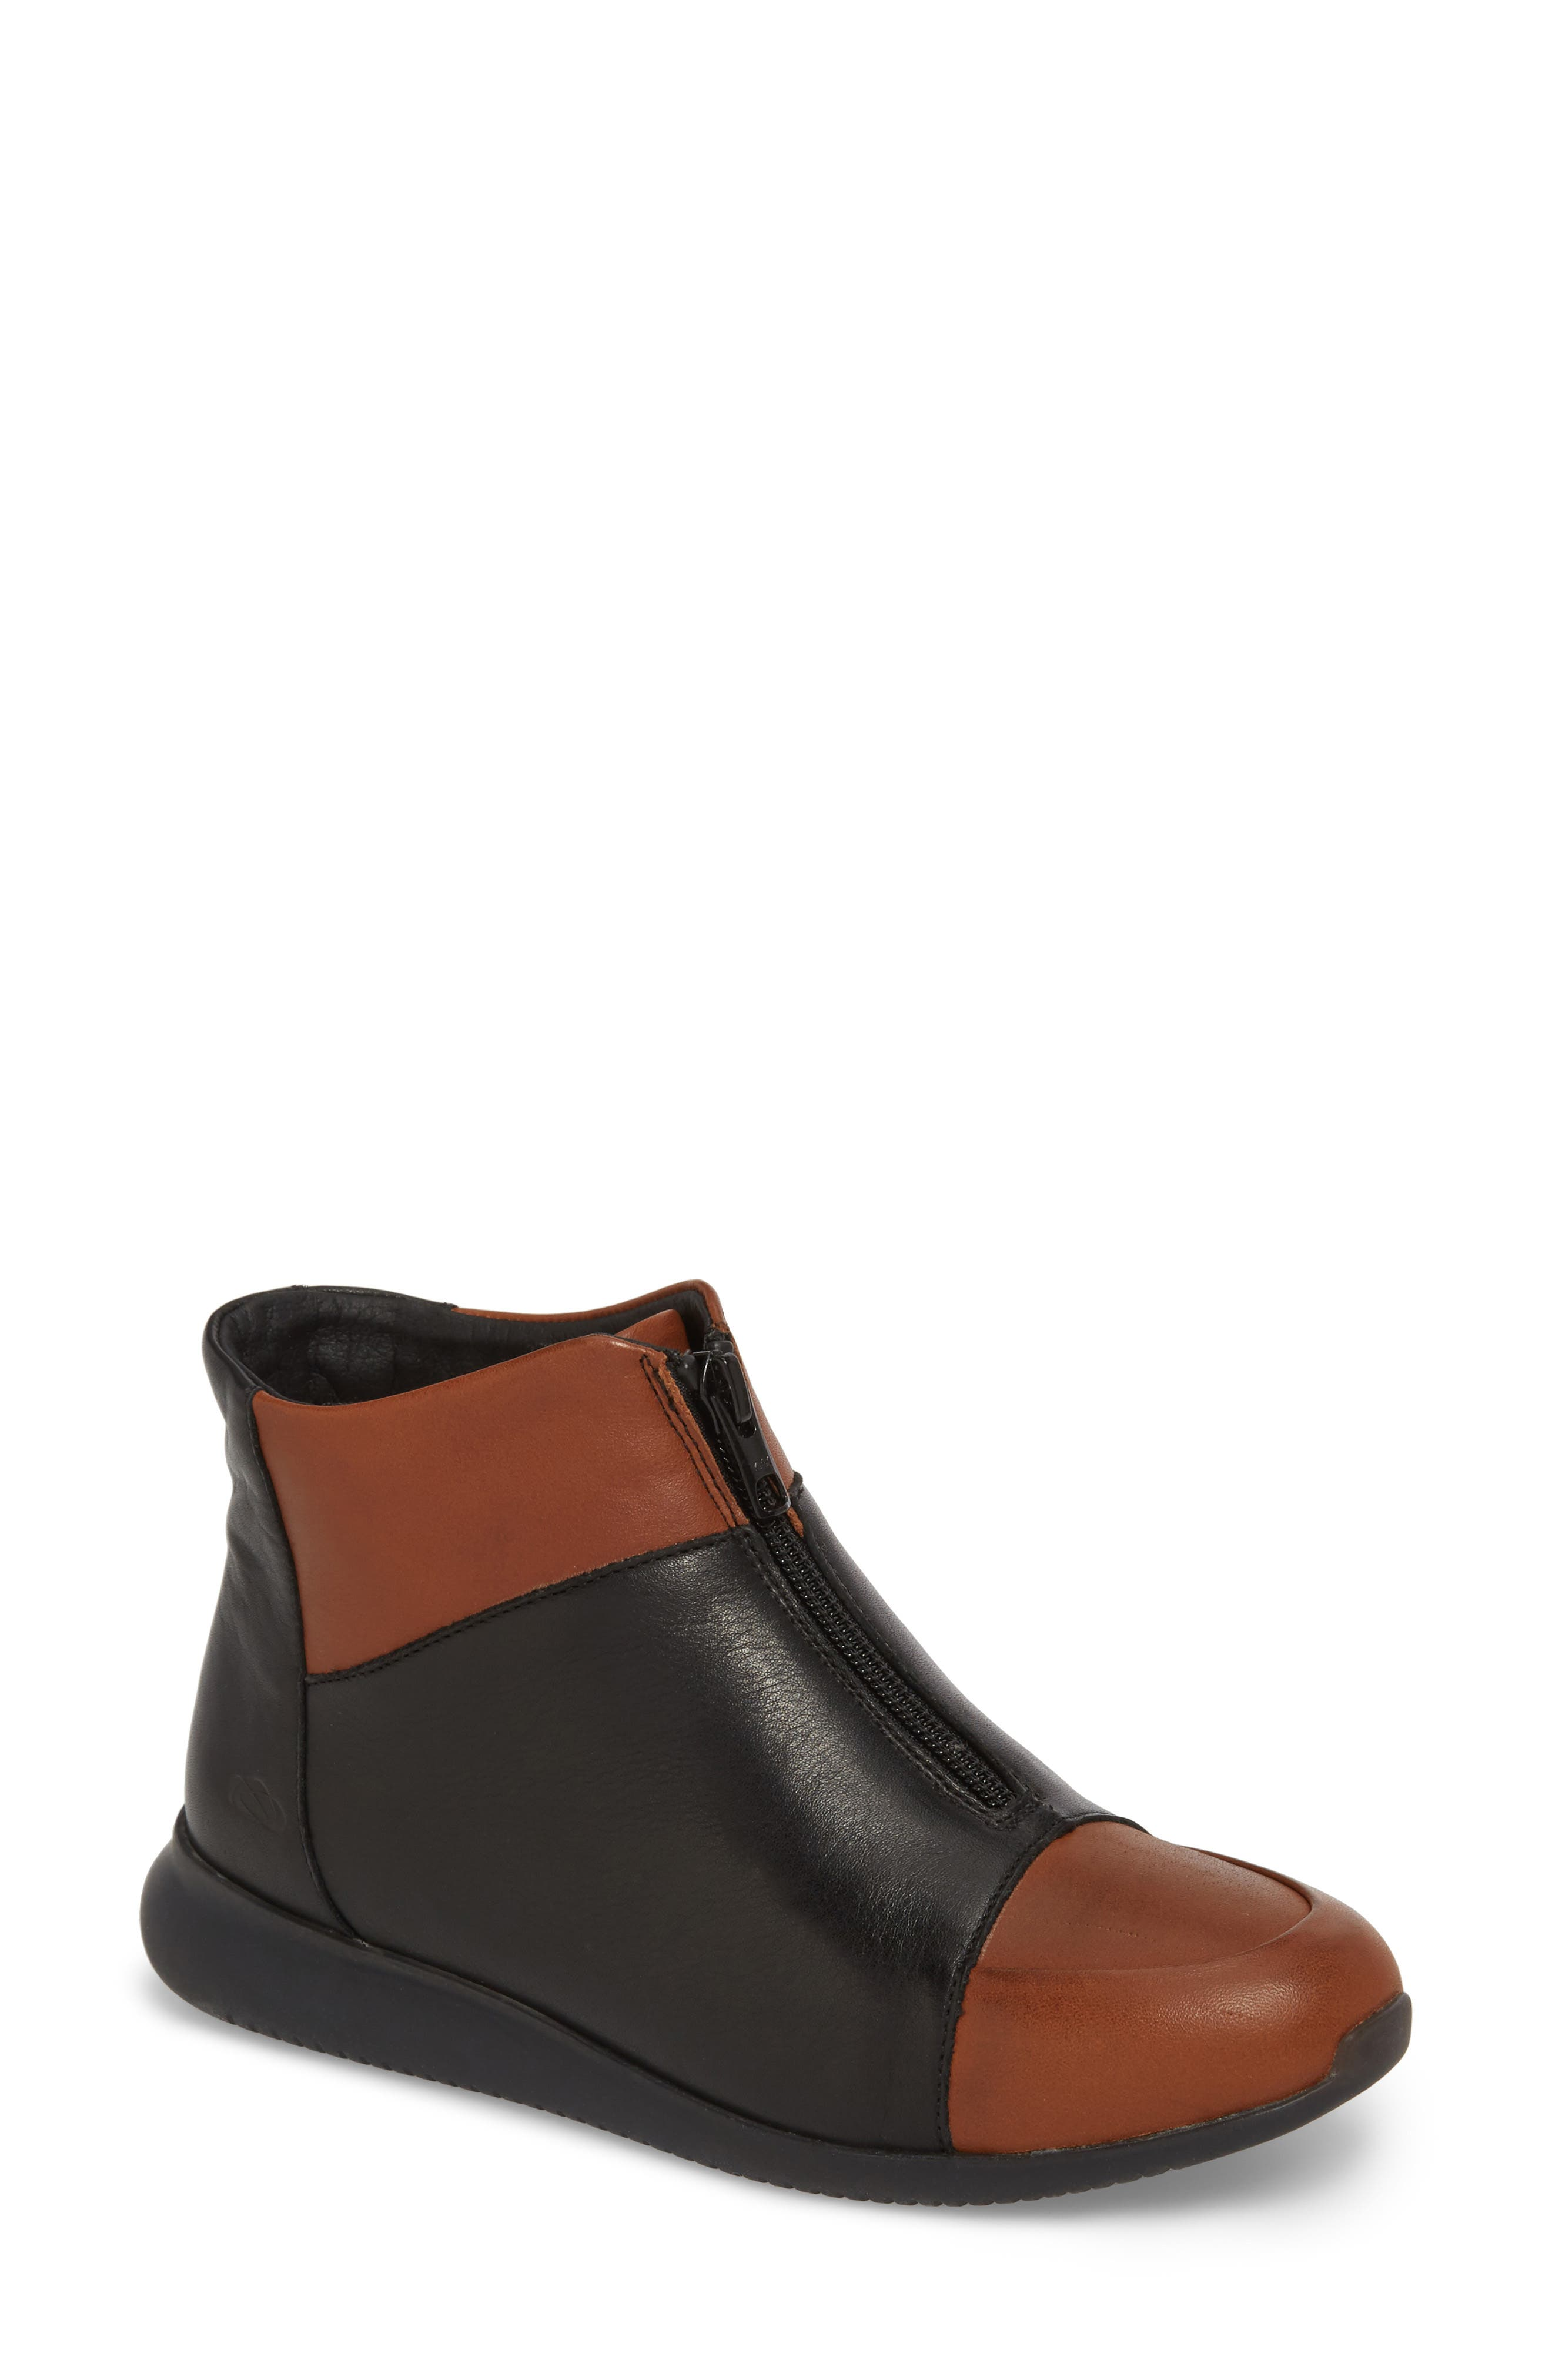 Roy Wool Lined Cap Toe Bootie,                             Main thumbnail 1, color,                             Cuoio/ Black Leather